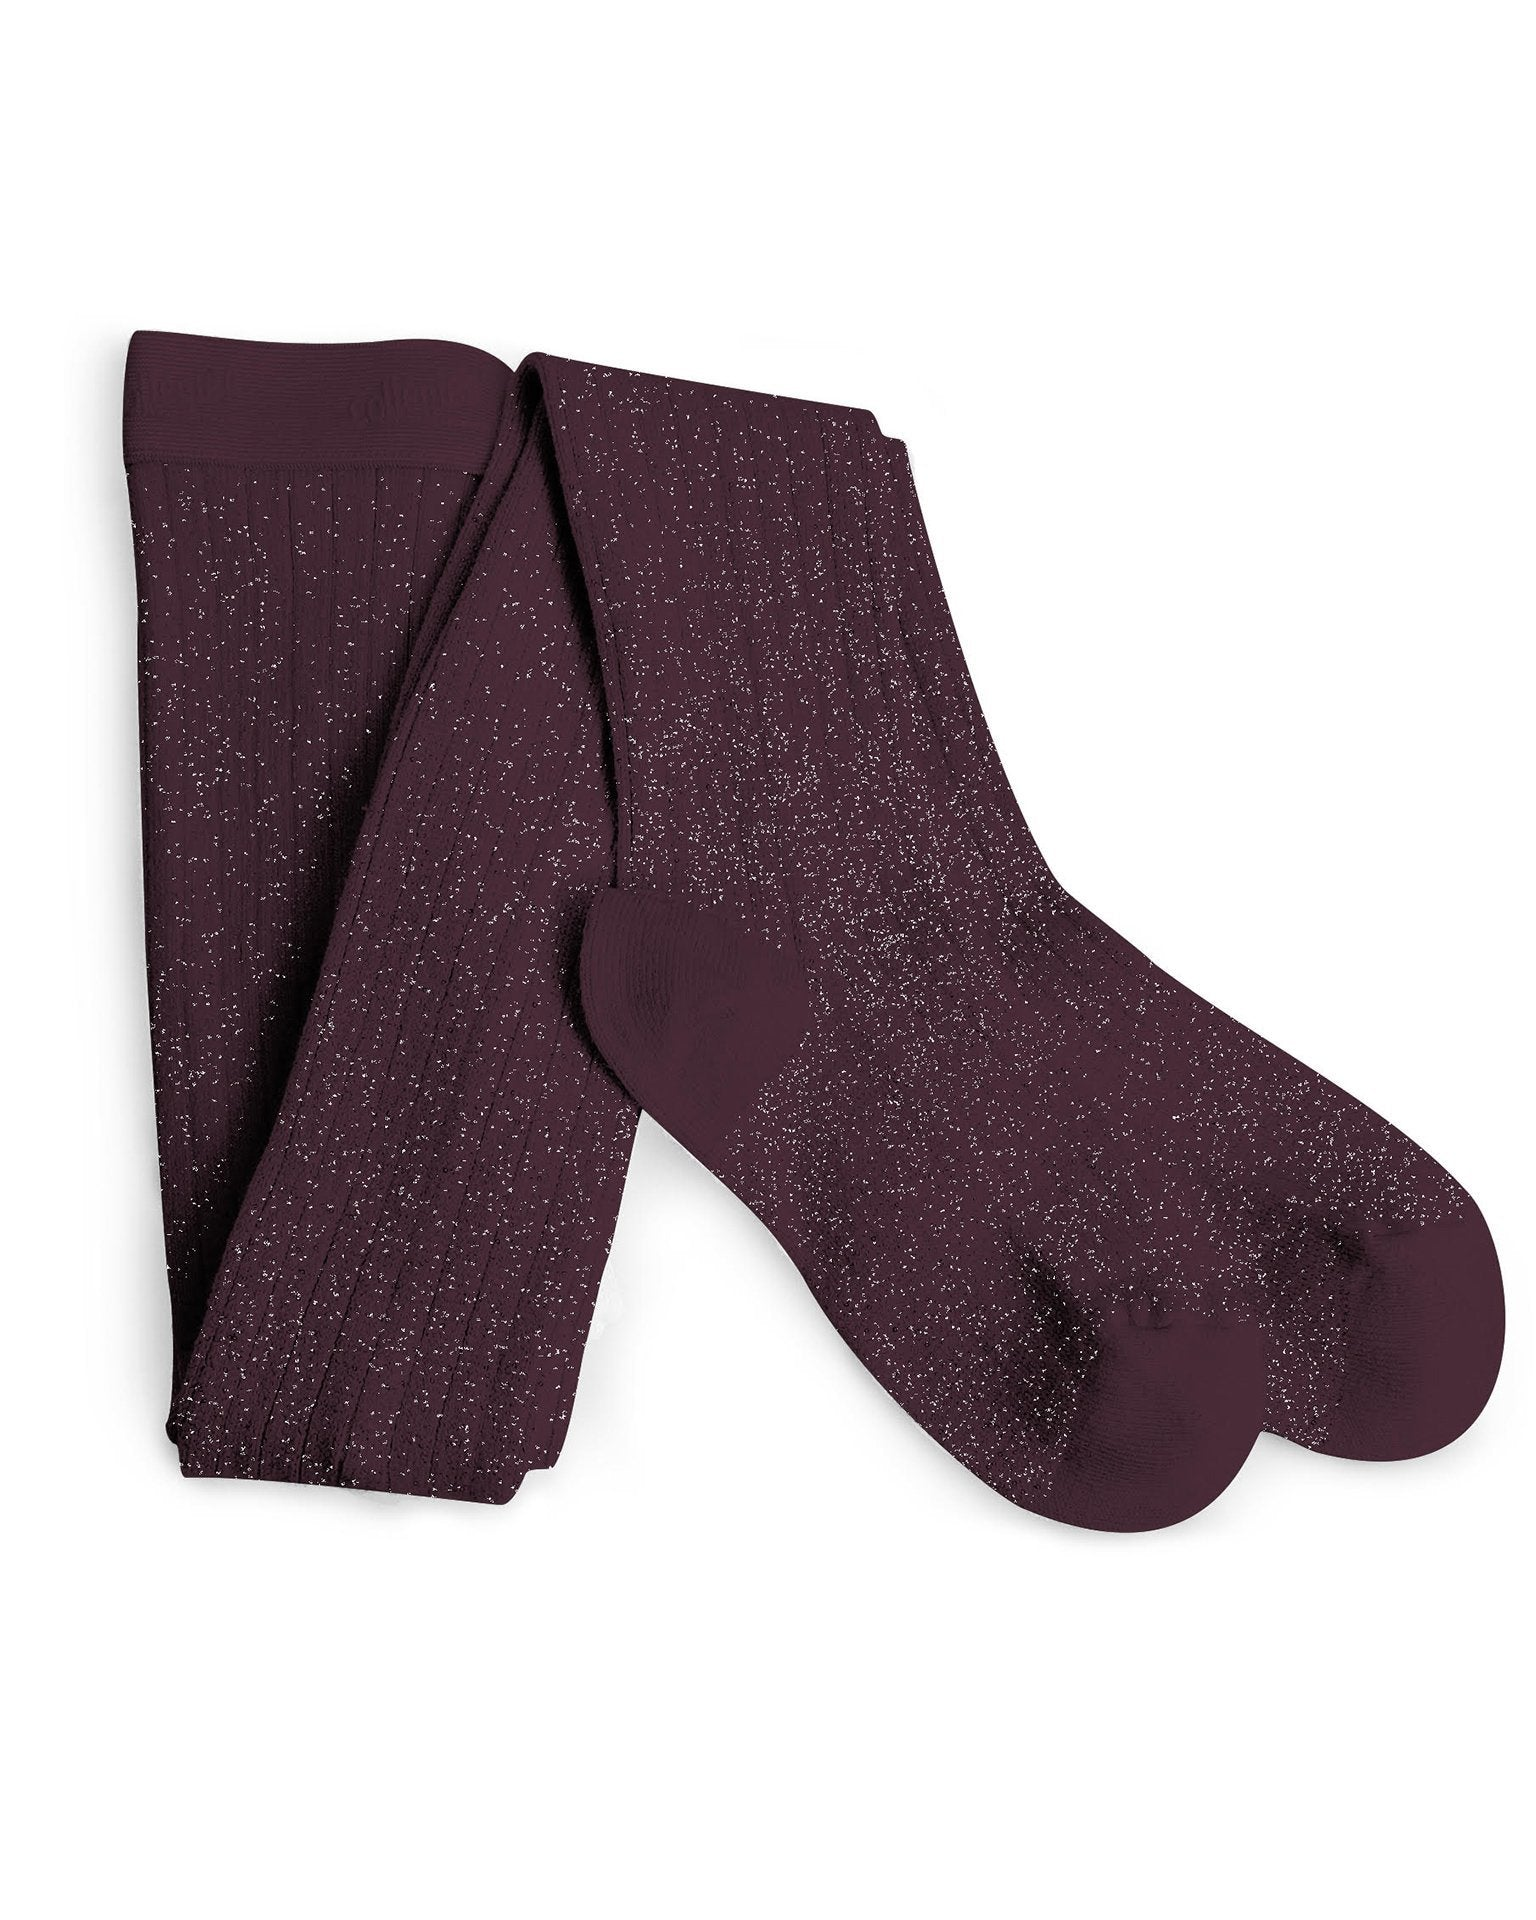 Little collegien accessories glittery tights in aubergine